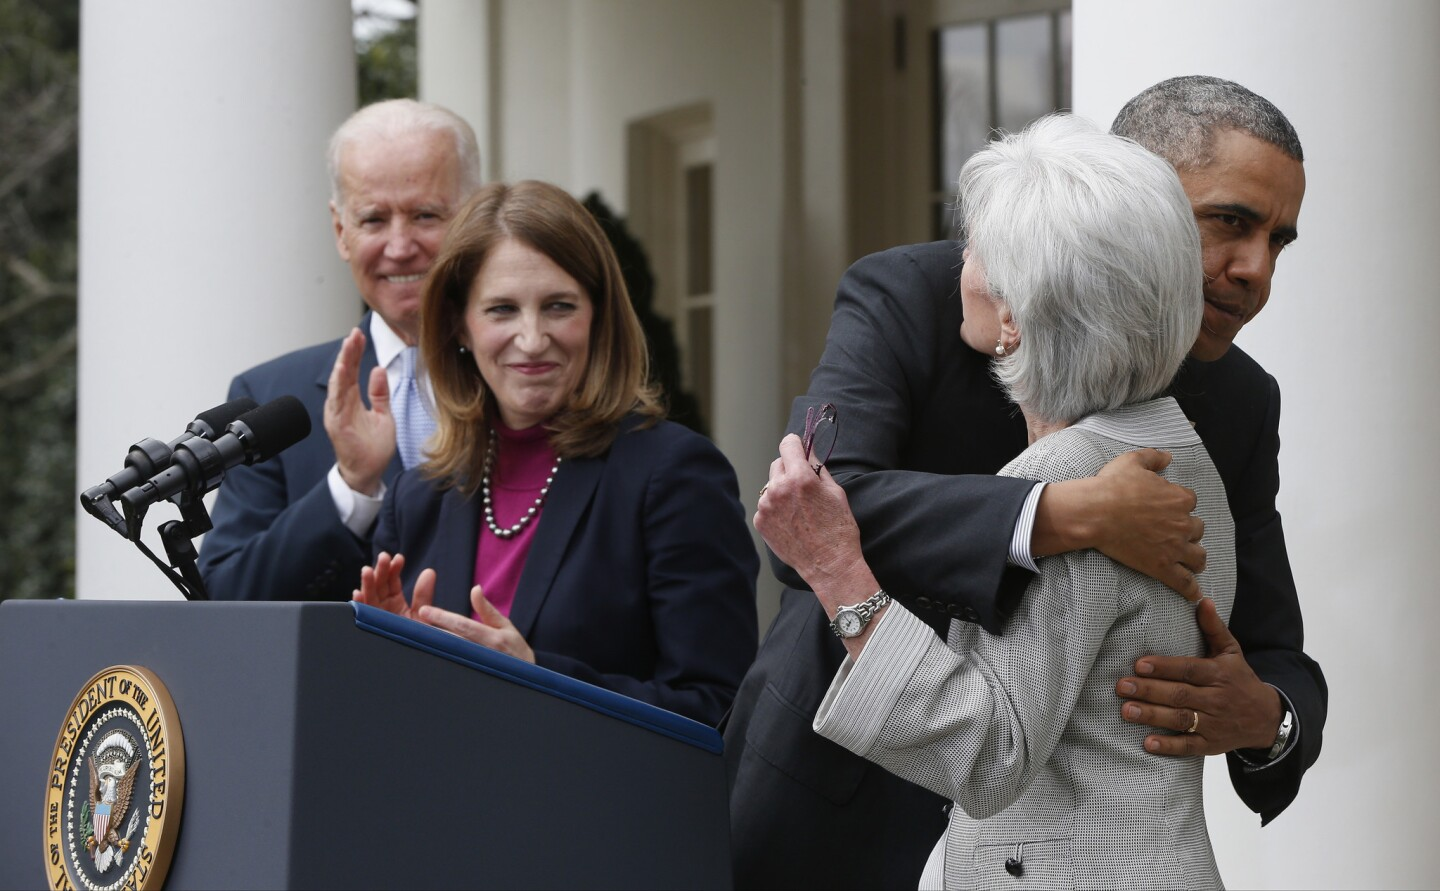 President Obama hugs outgoing Health and Human Services Secretary Kathleen Sebelius as he stands with Vice President Joe Biden and Sylvia Mathews Burwell, his nominee to replace her.